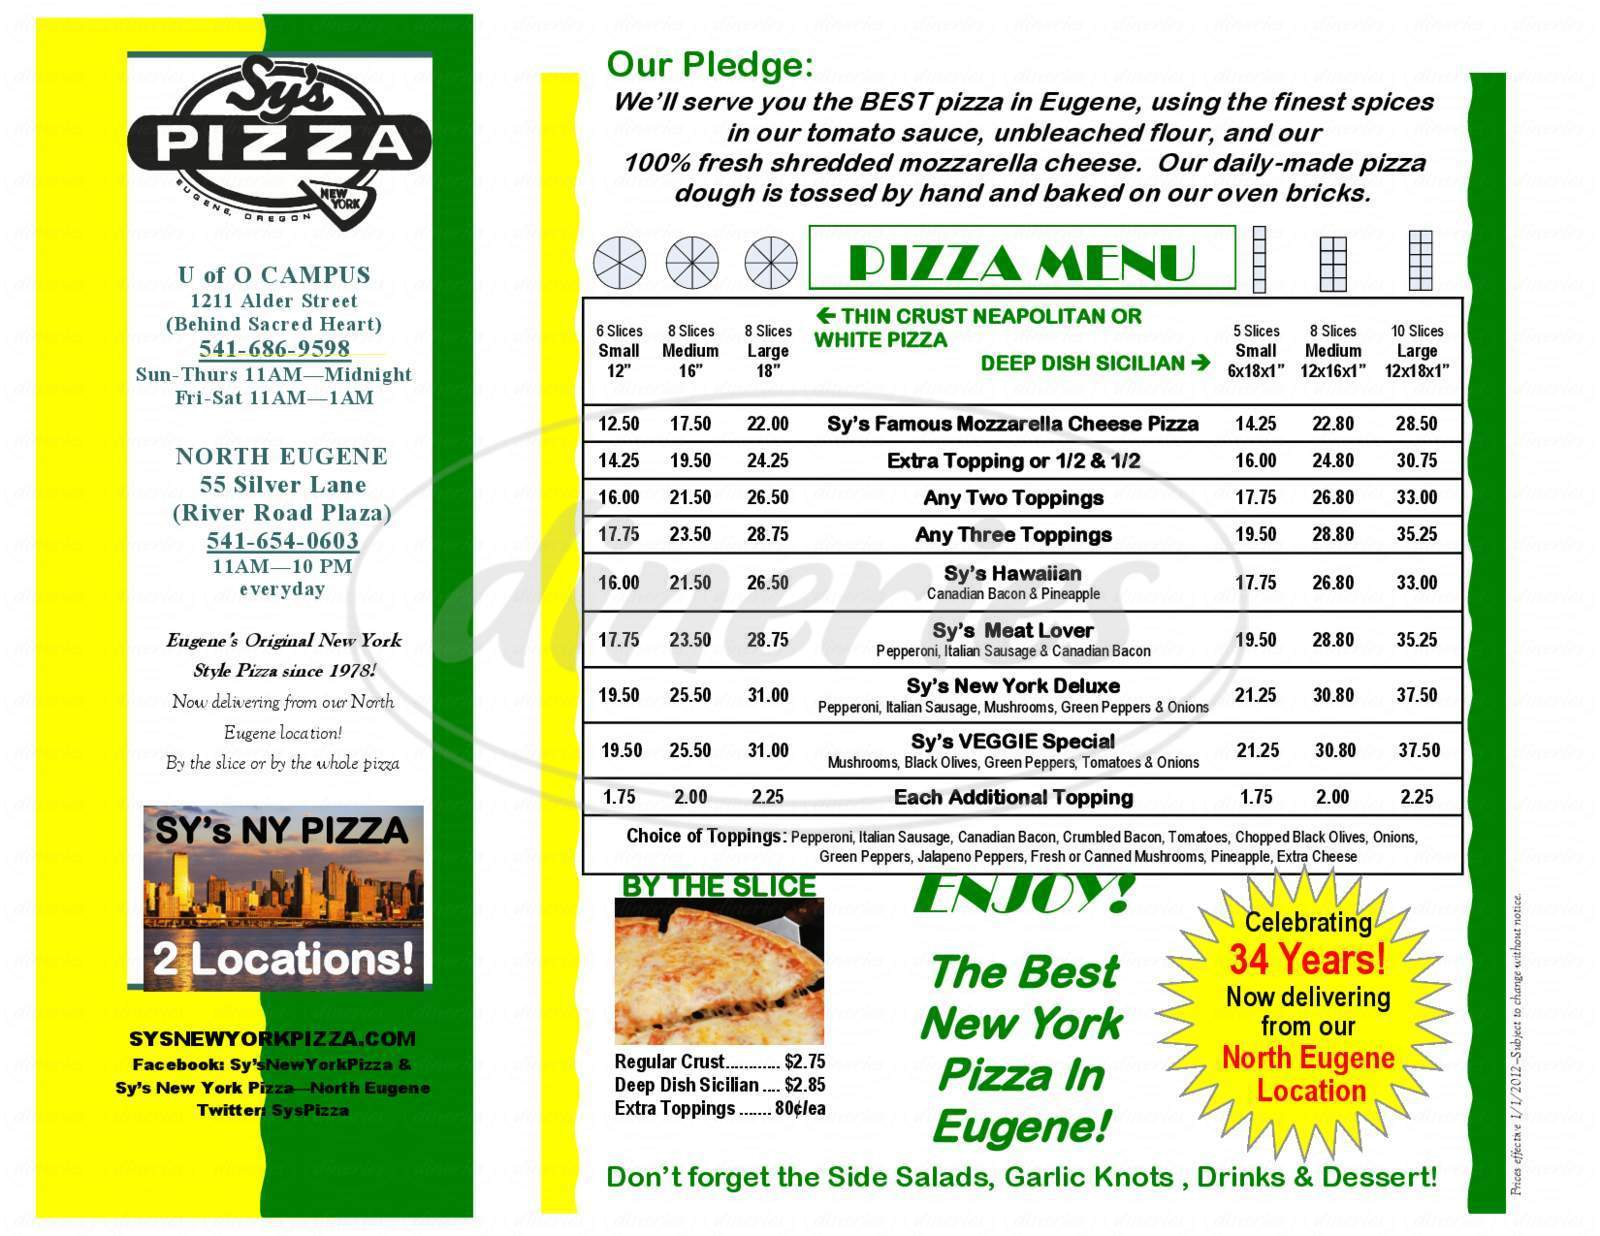 menu for Sy's New York Pizza